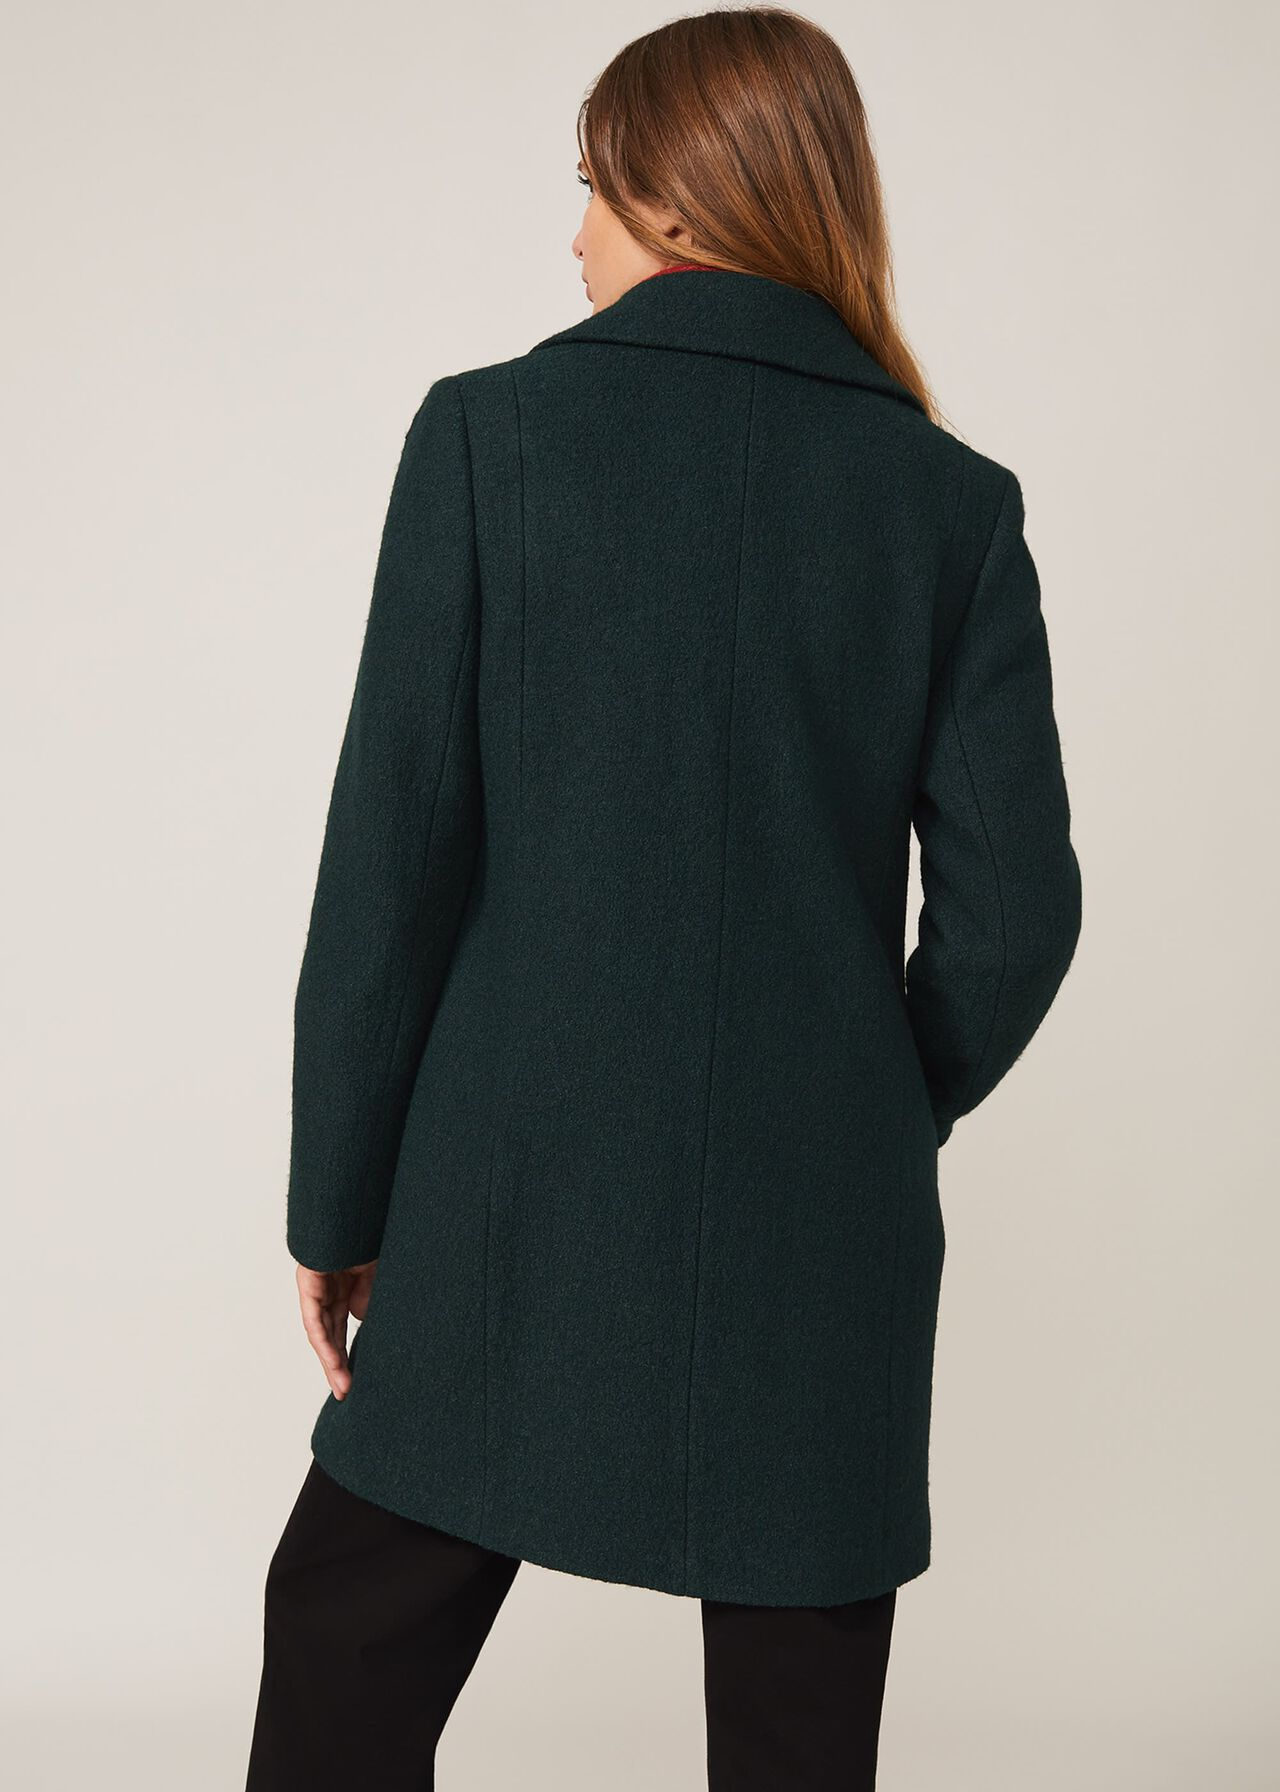 Lucine Double Breasted Wool Coat